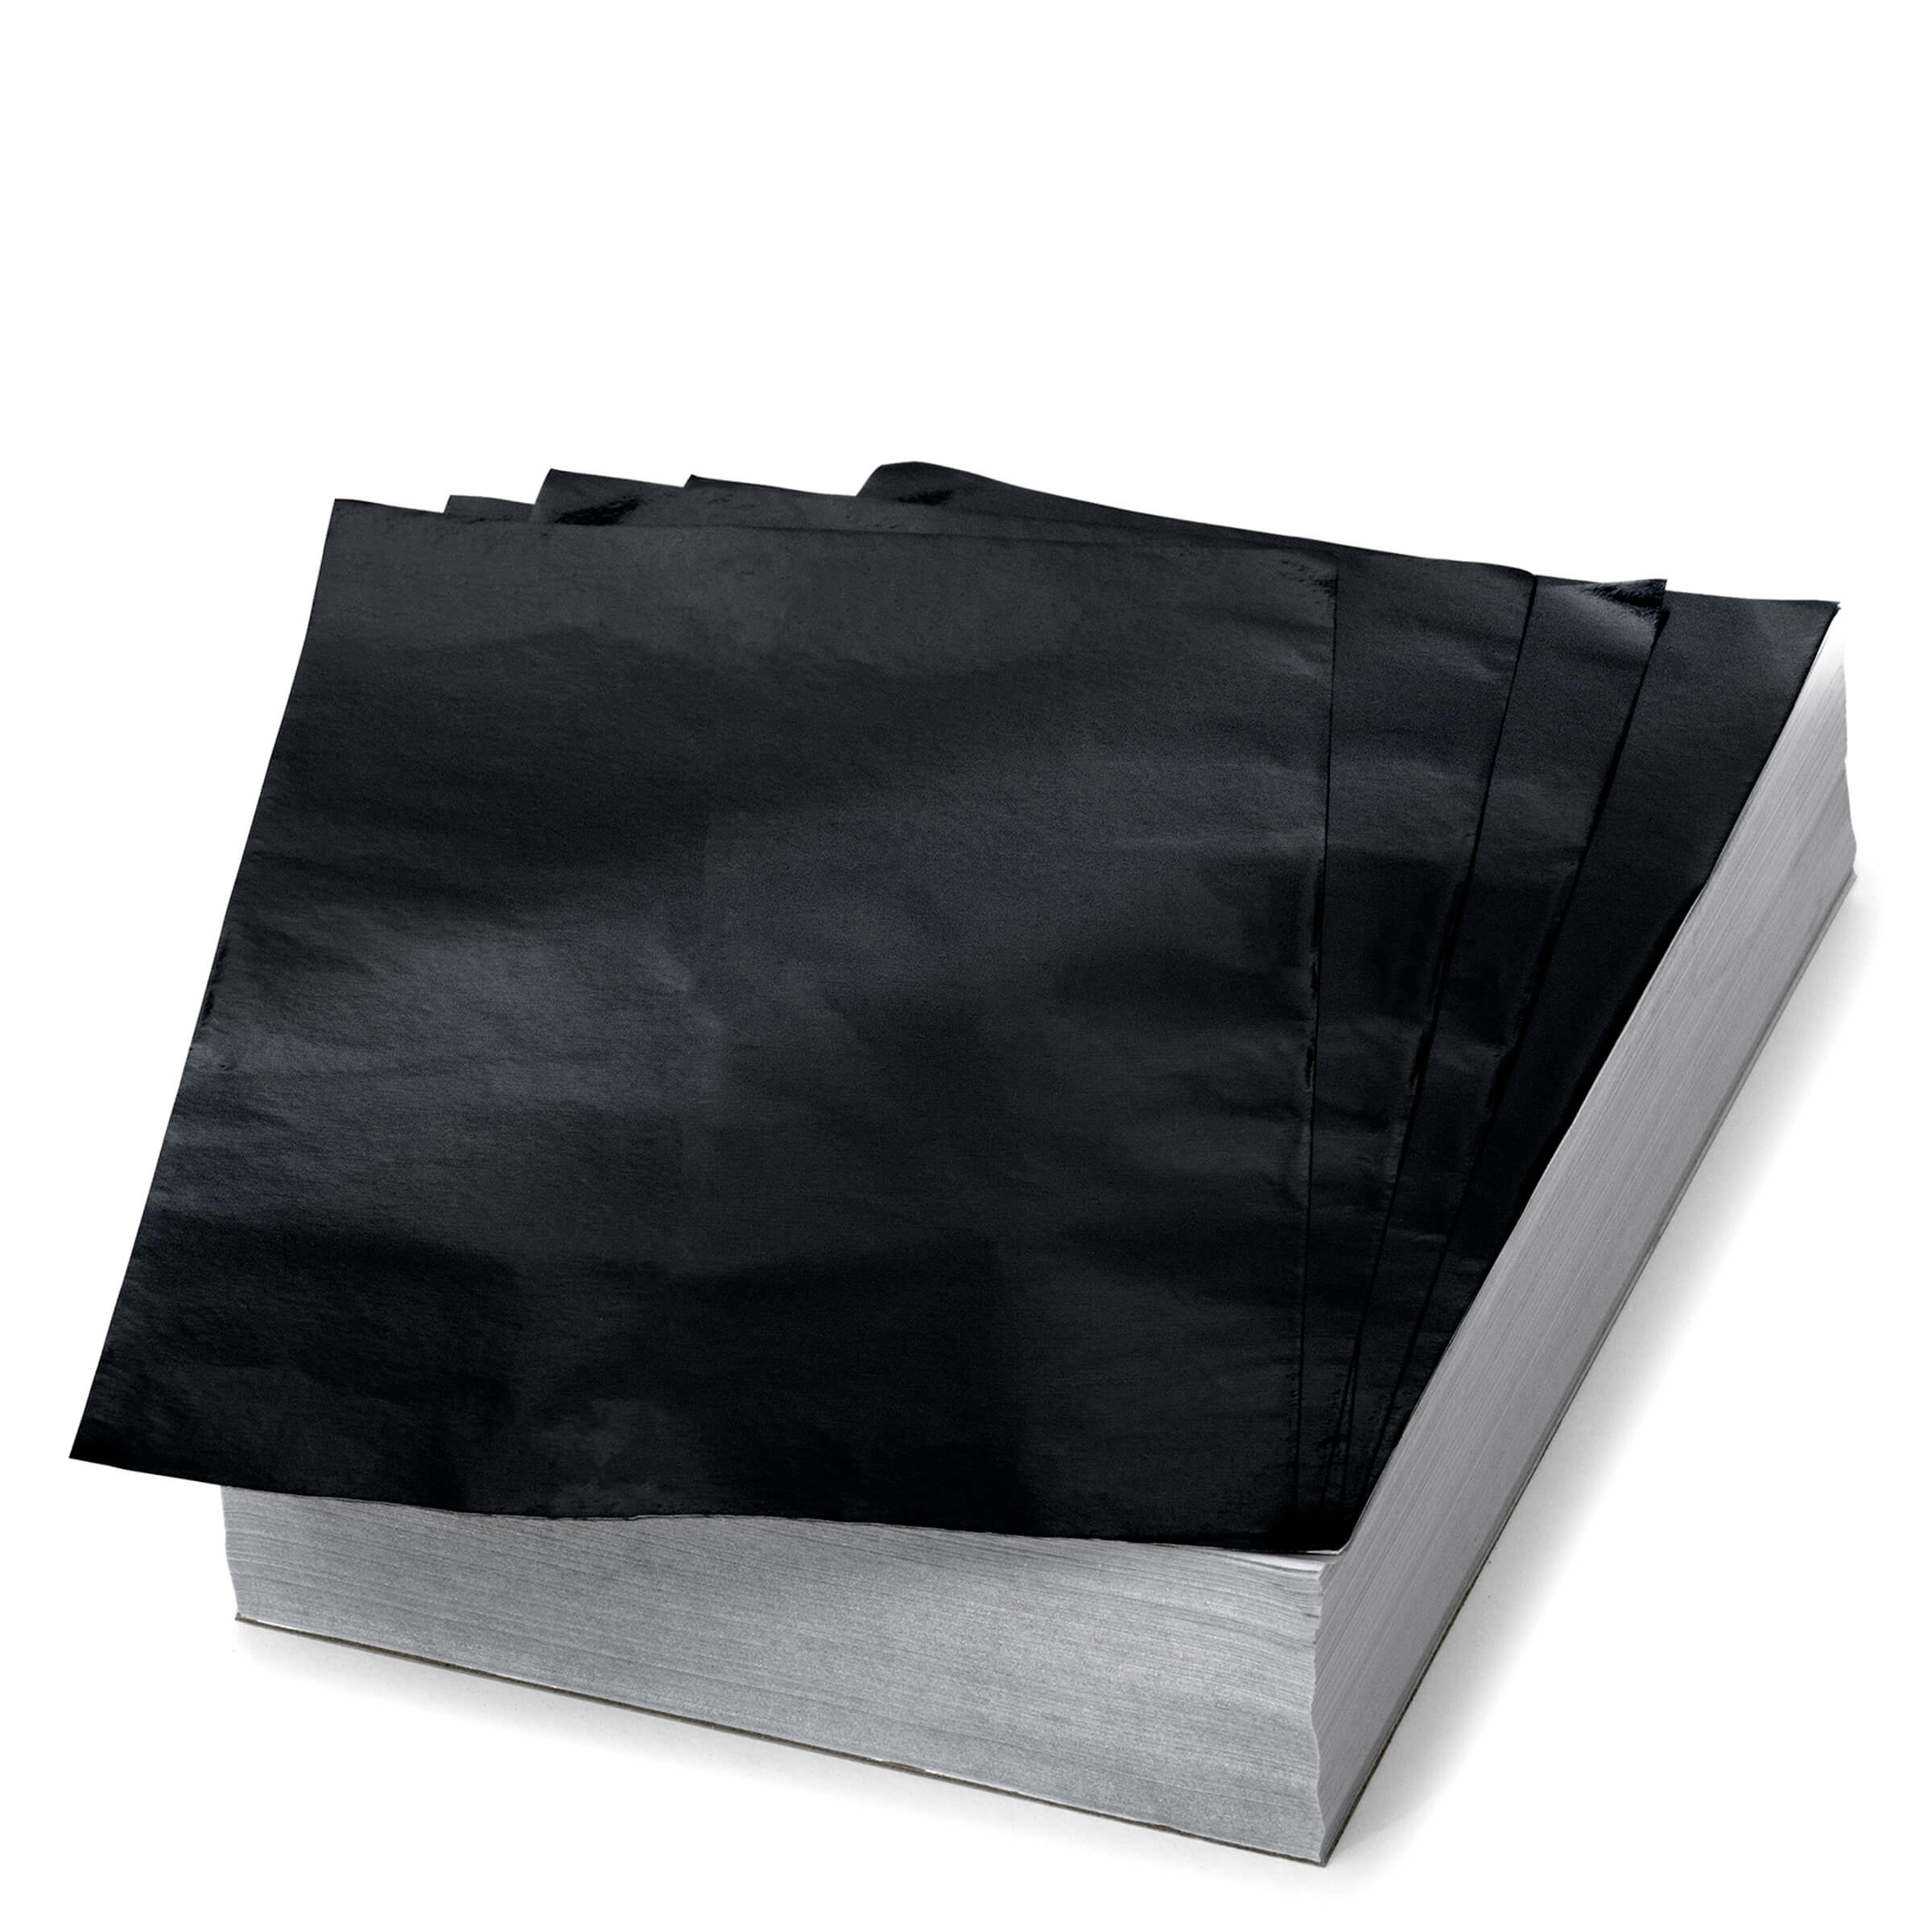 AL-58-60BK-a-5x8-smooth-foil-medium-black-l.jpg